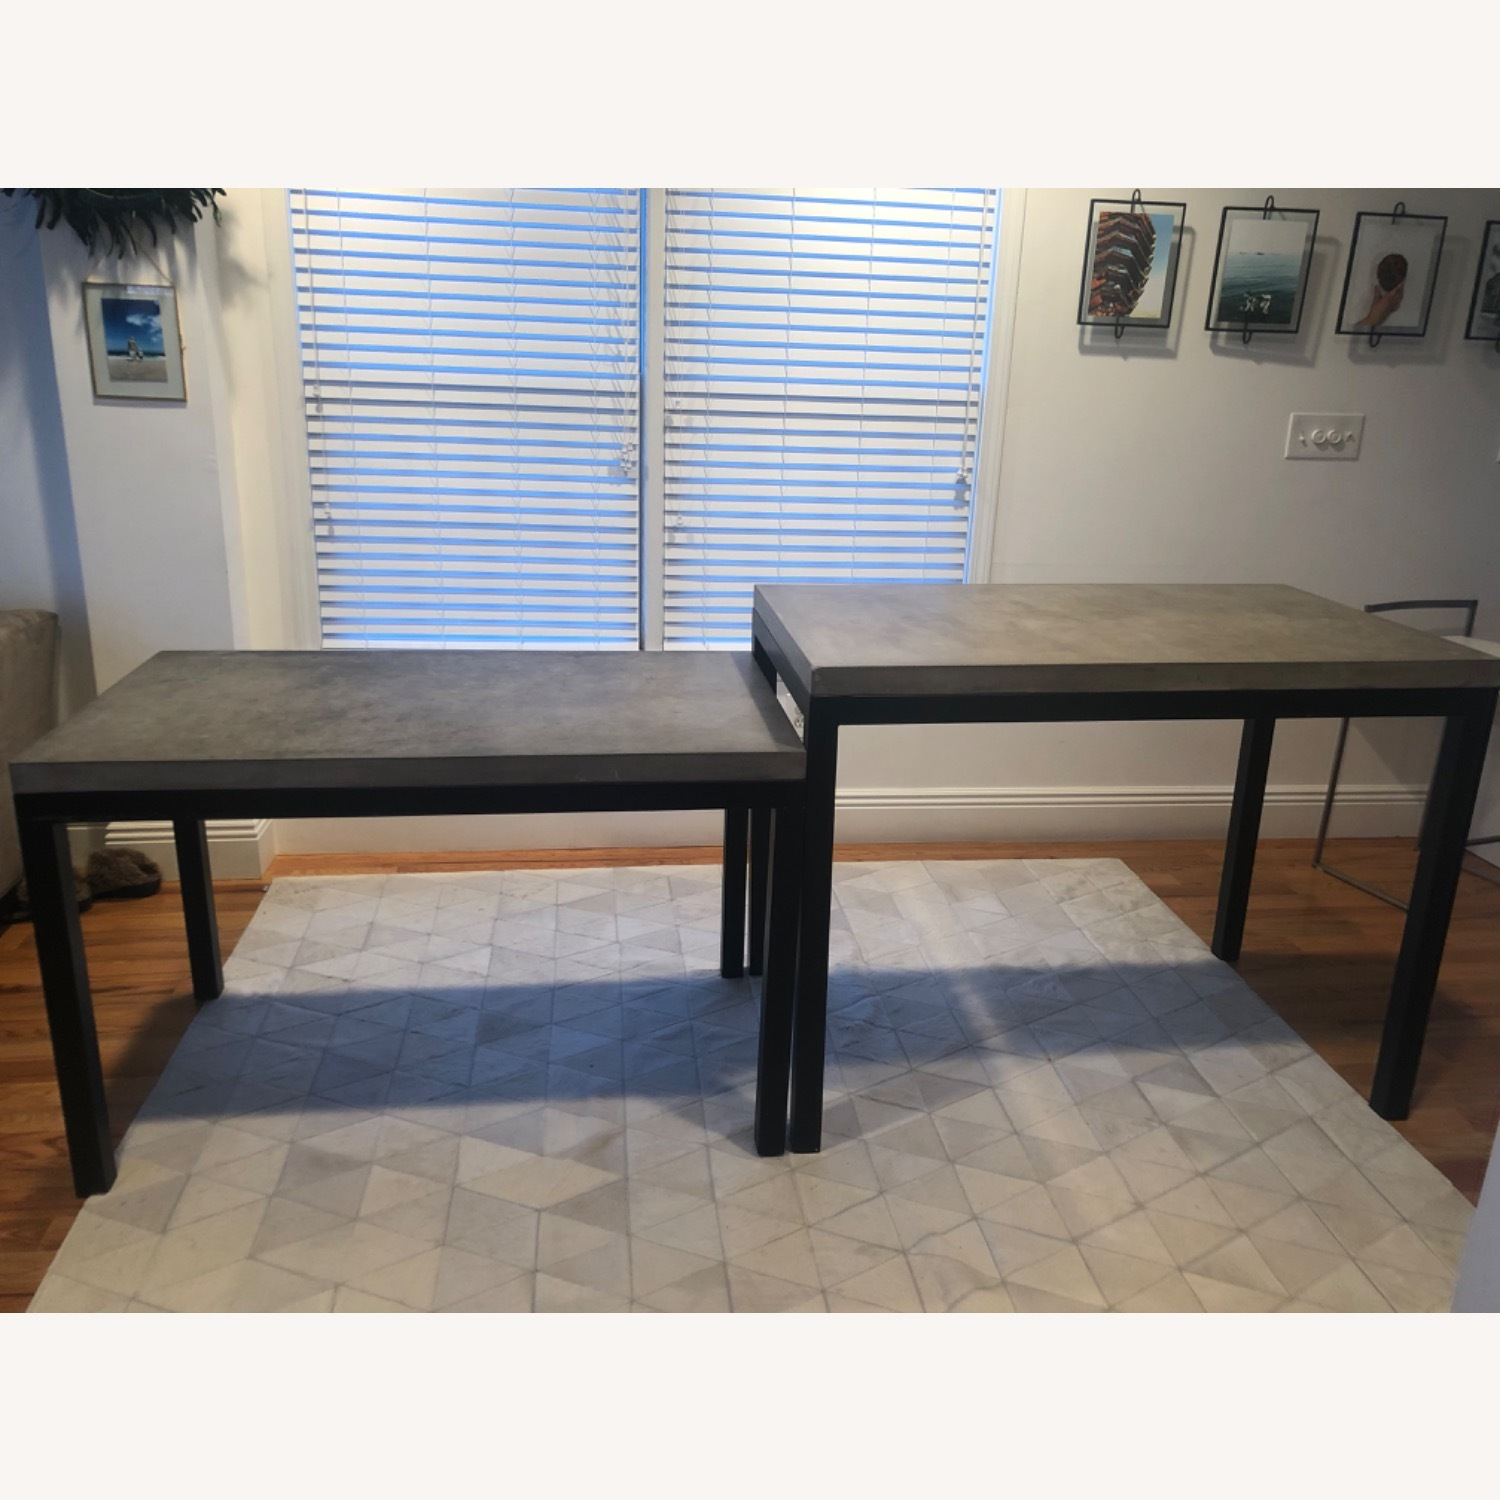 Crate & Barrel 2 Concrete Dining Tables - image-1